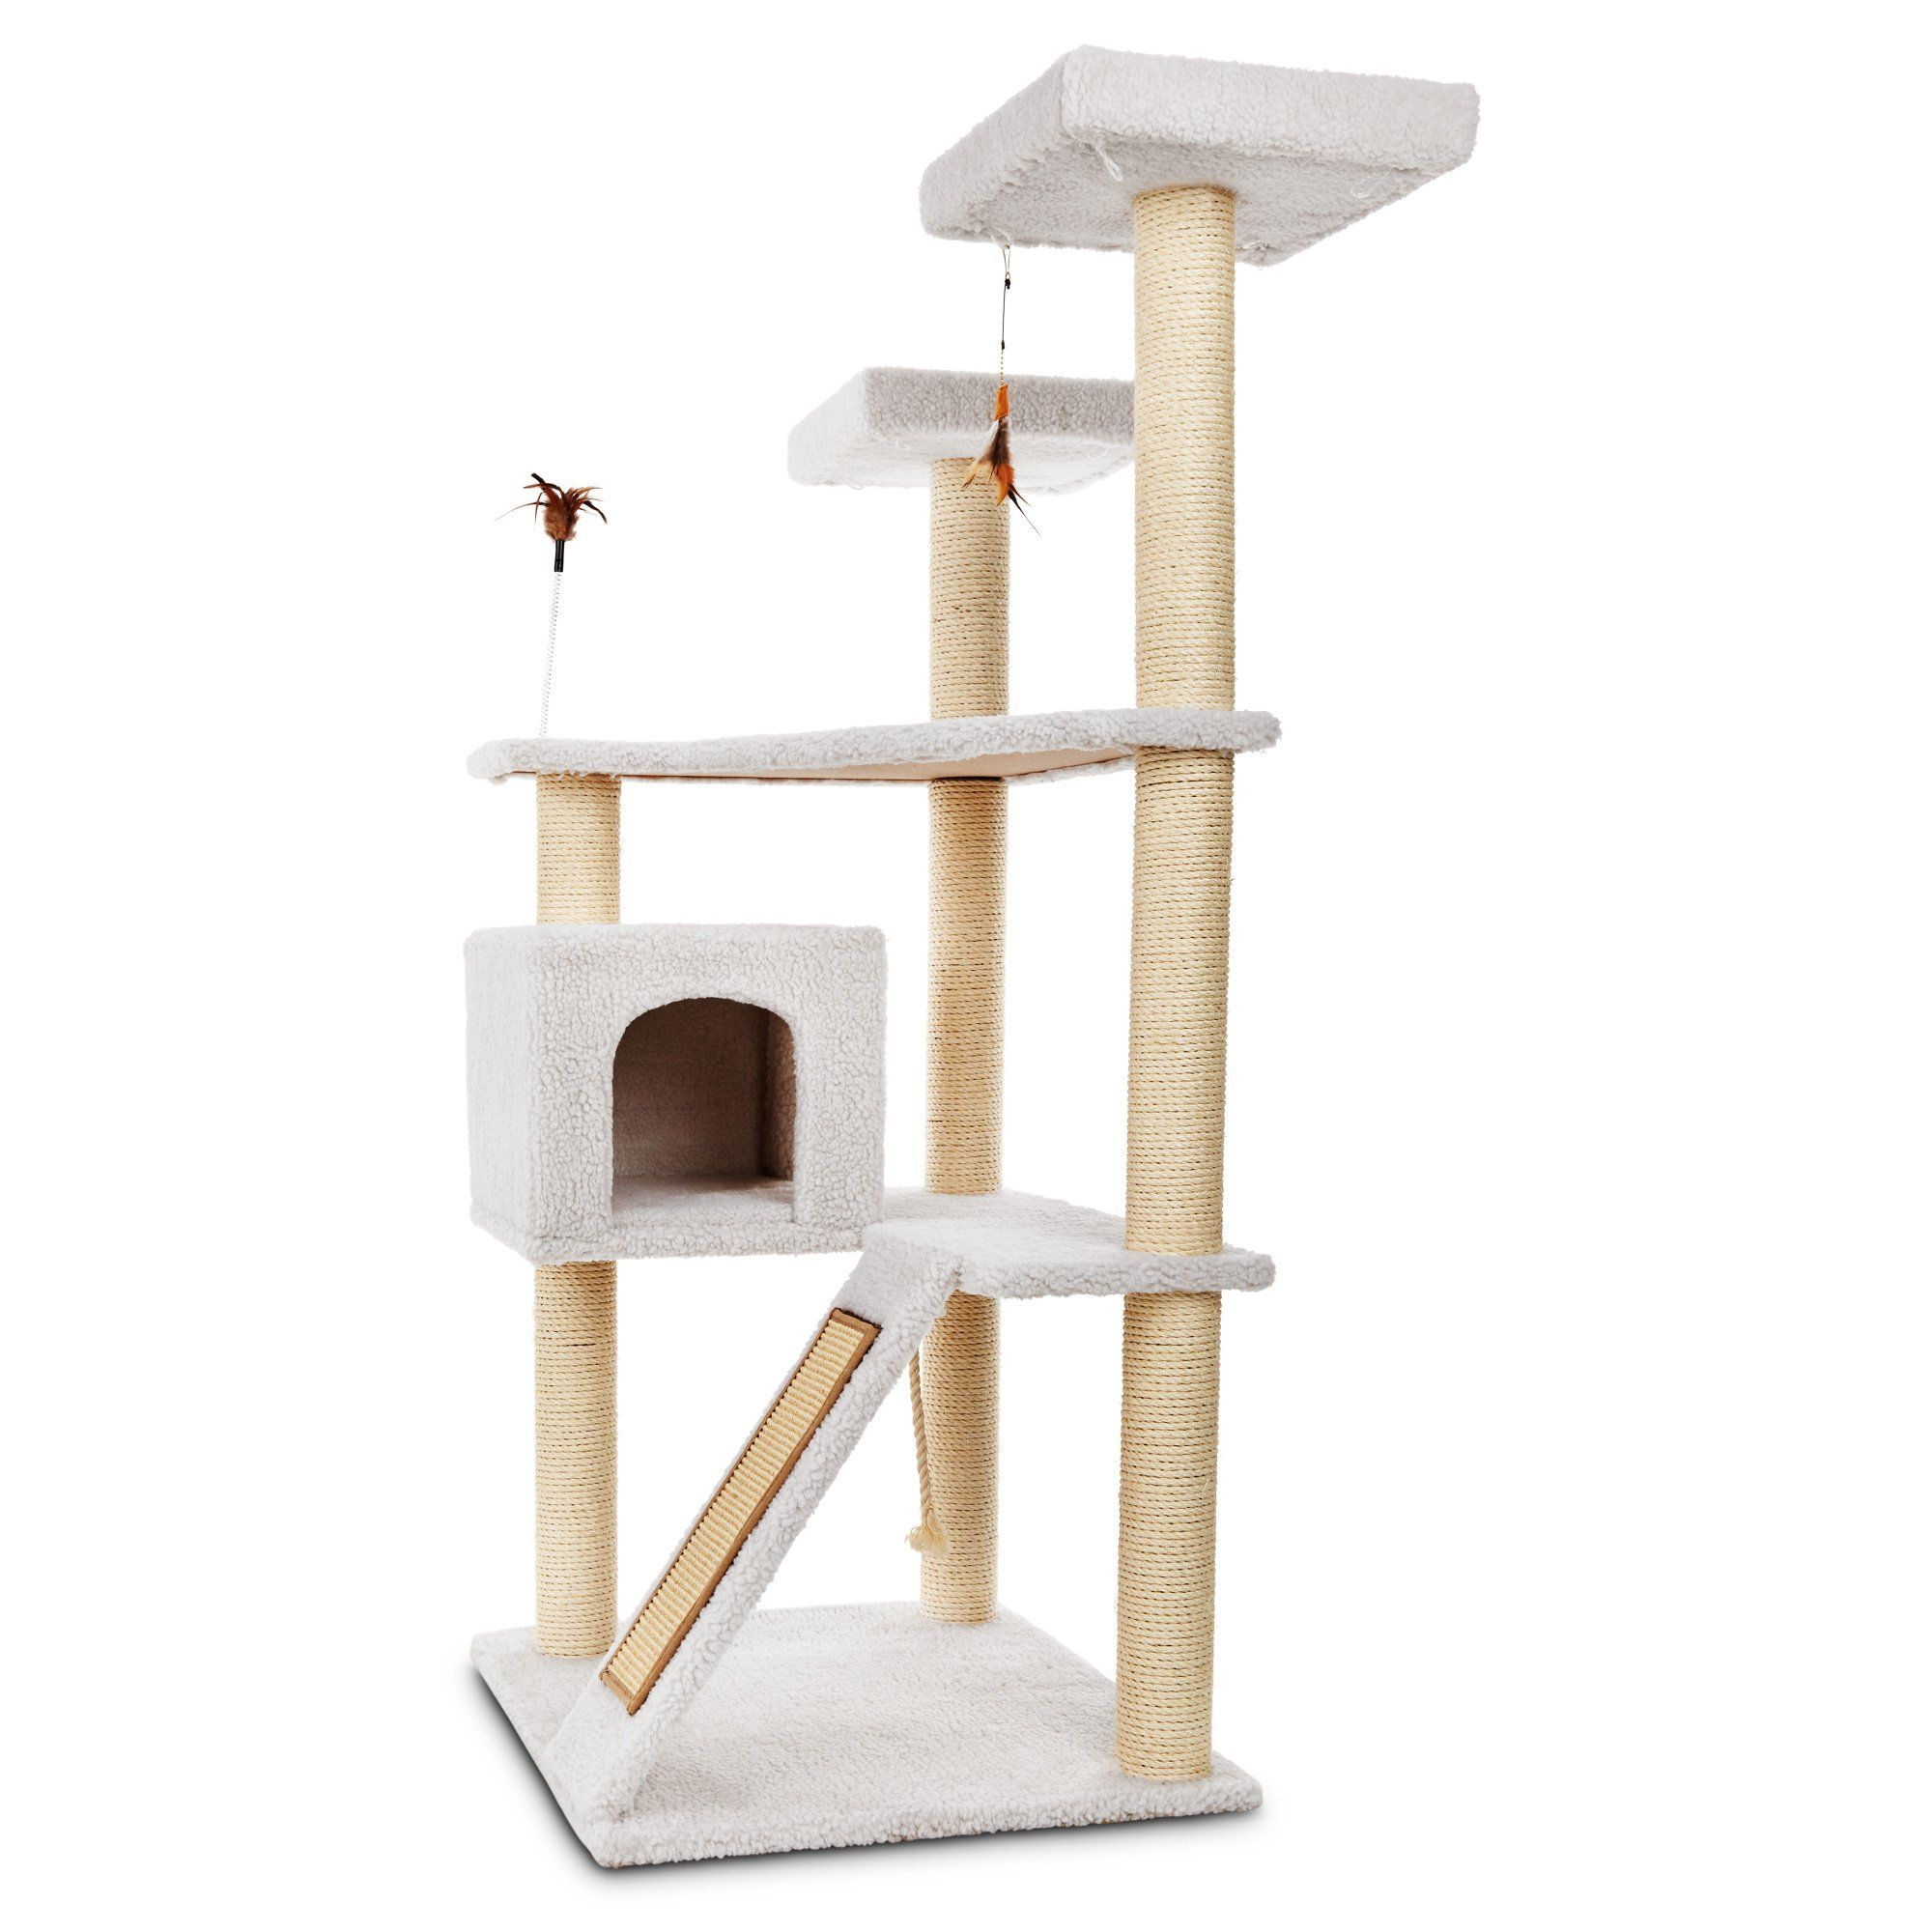 For Climbing Resting Playing And Scratching It Features Durable